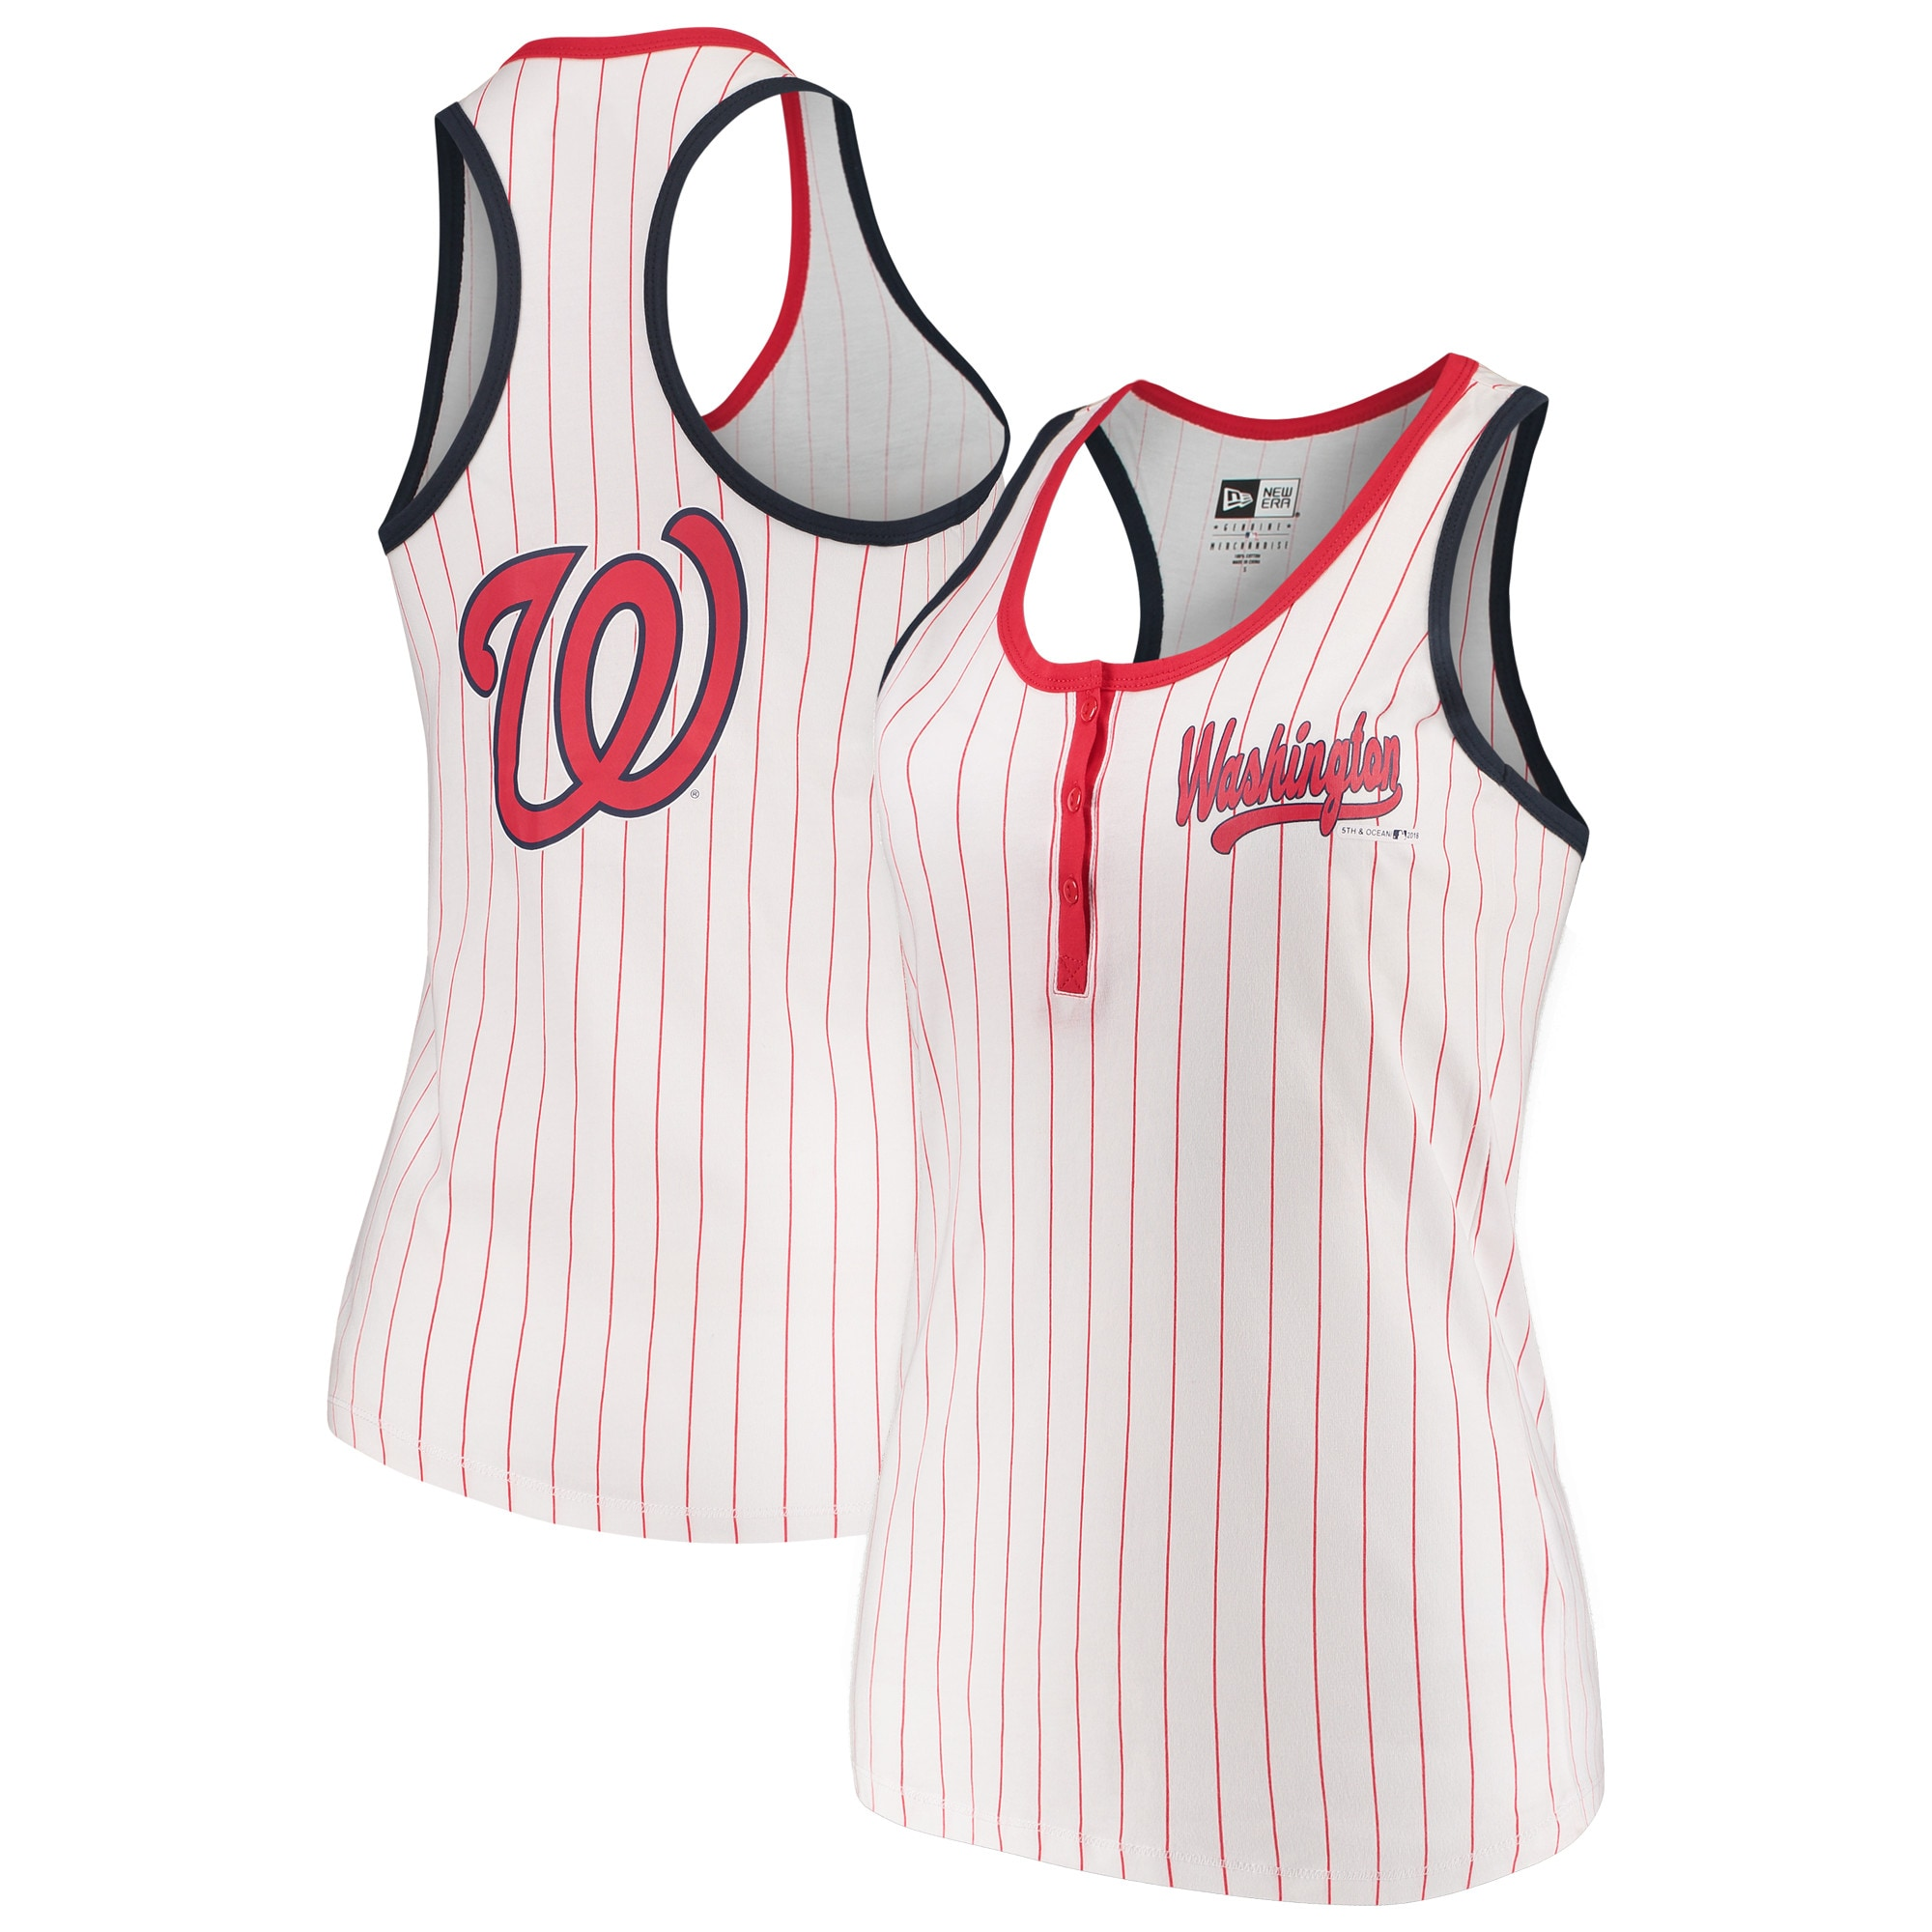 Washington Nationals 5th & Ocean by New Era Women's Pinstripe Henley Racerback Tank Top - White